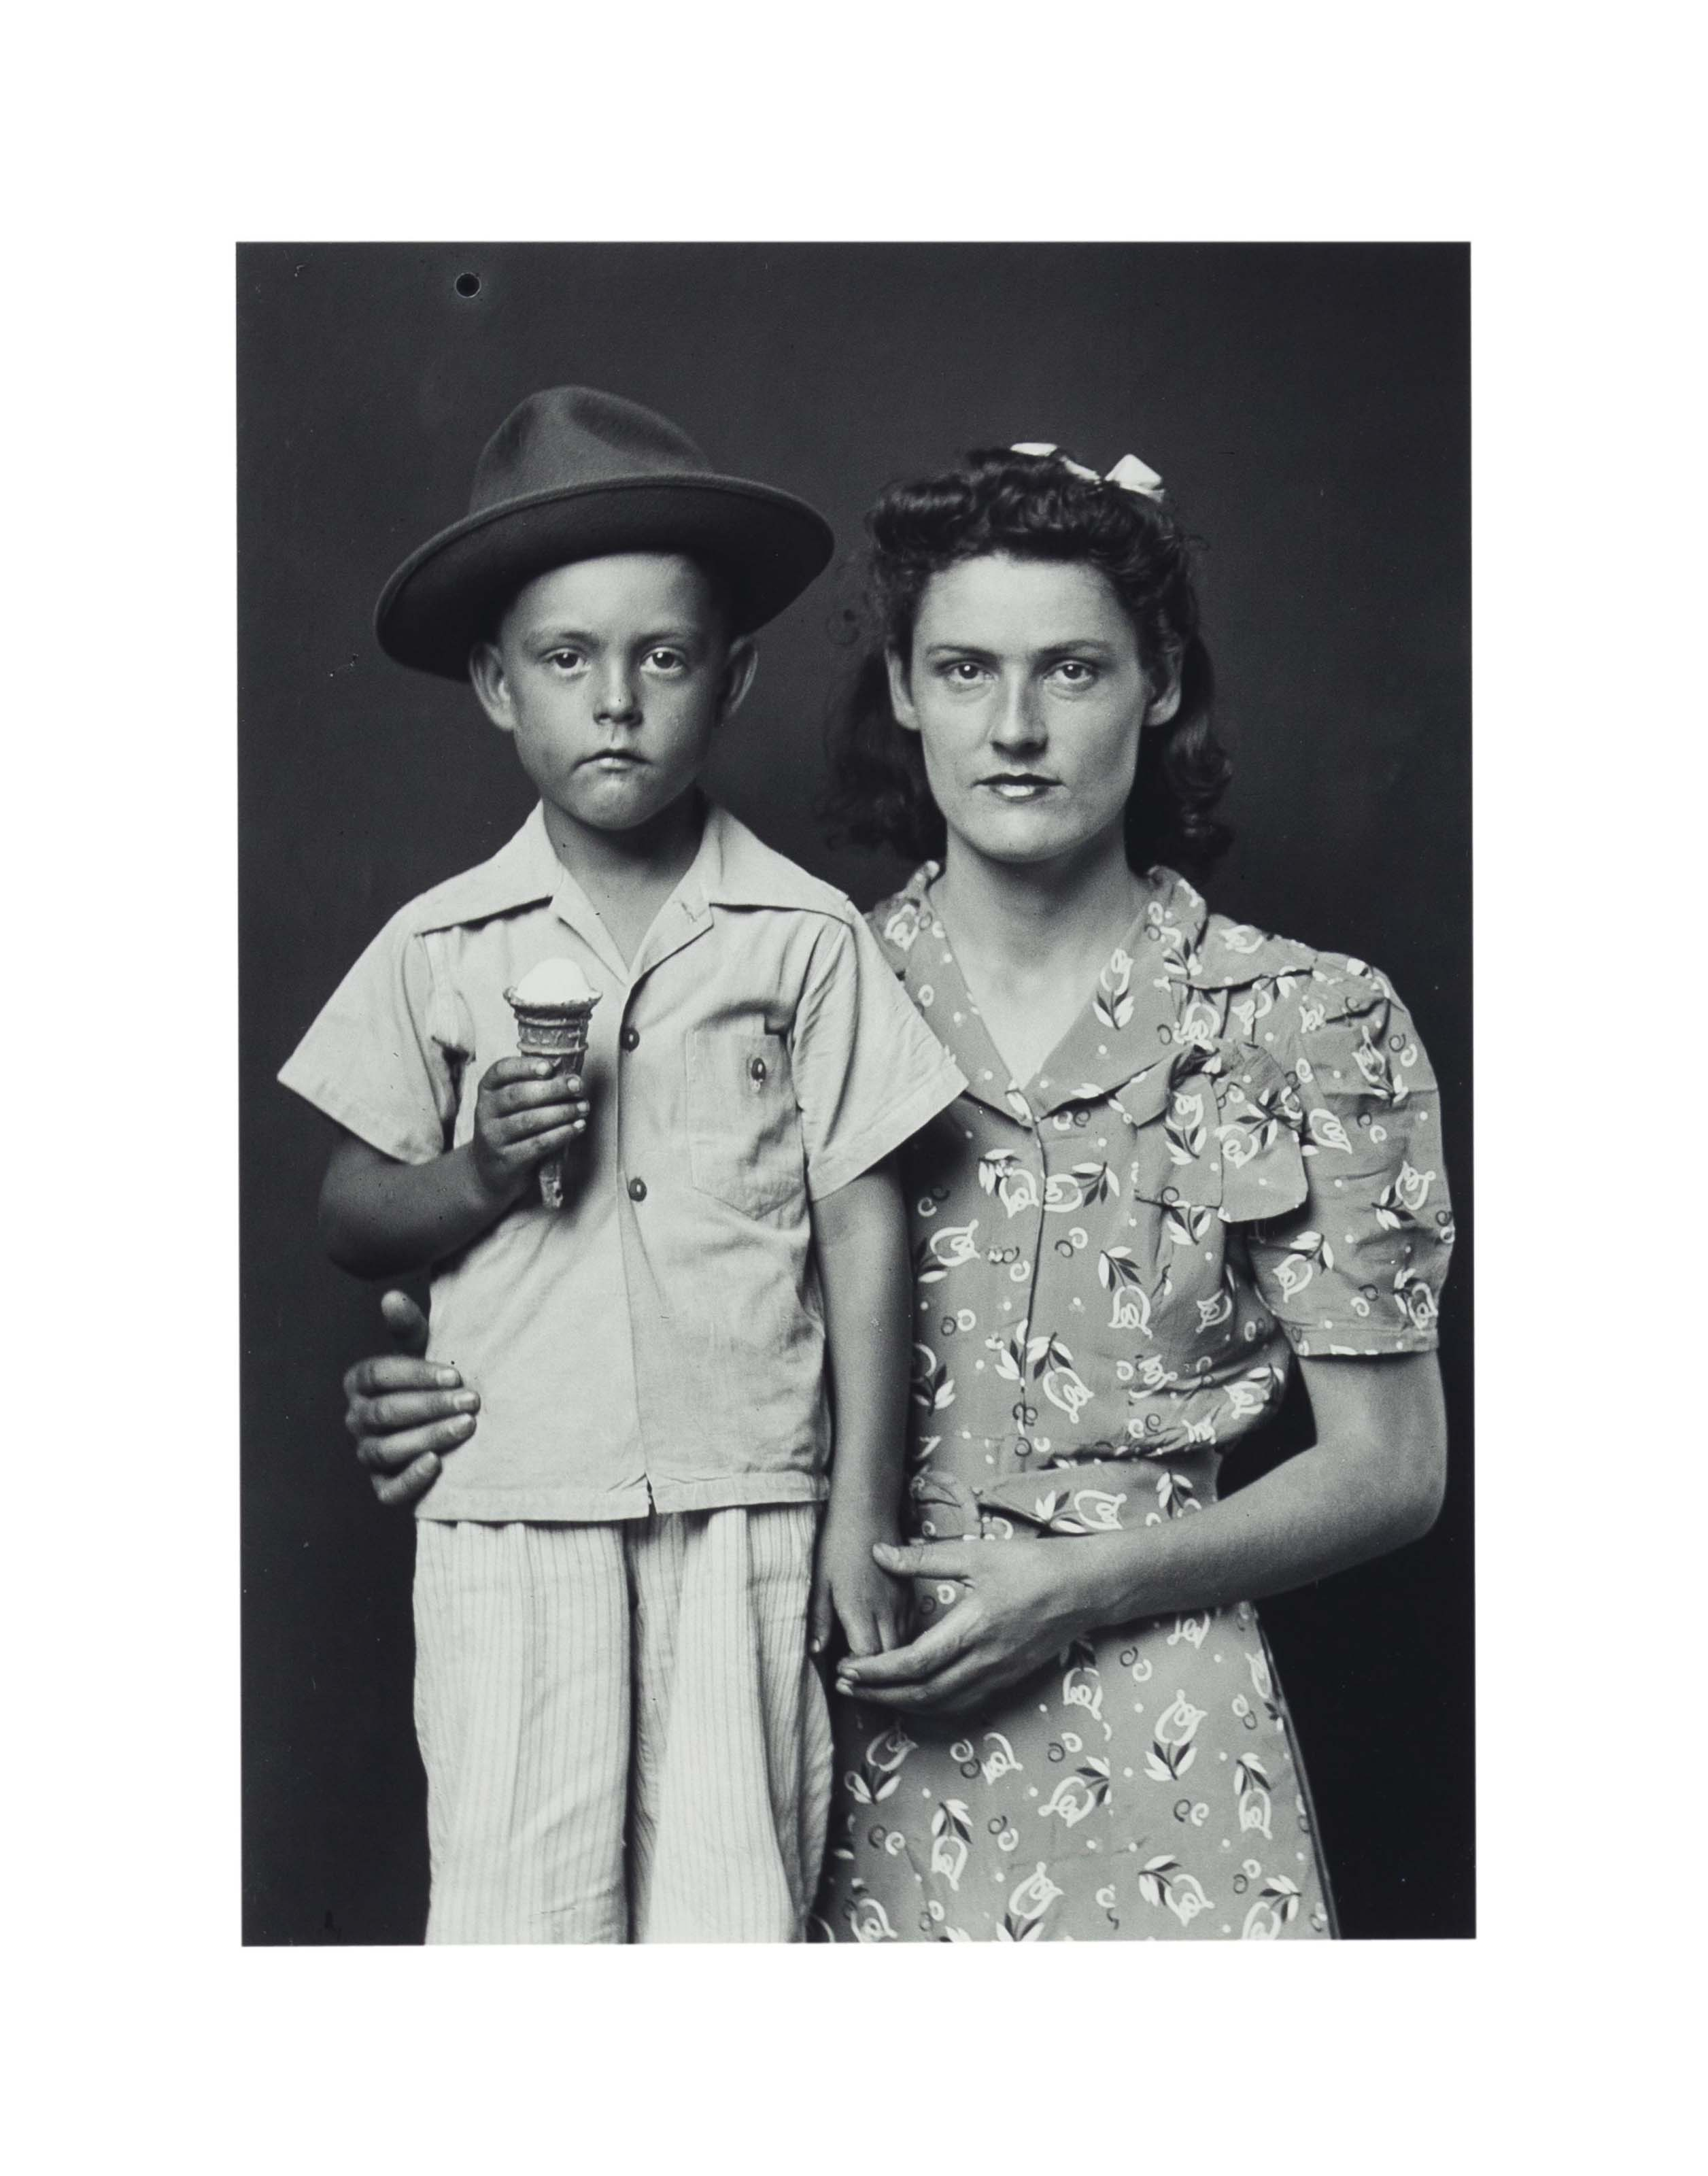 Mother and Boy with Ice Cream, c. 1940